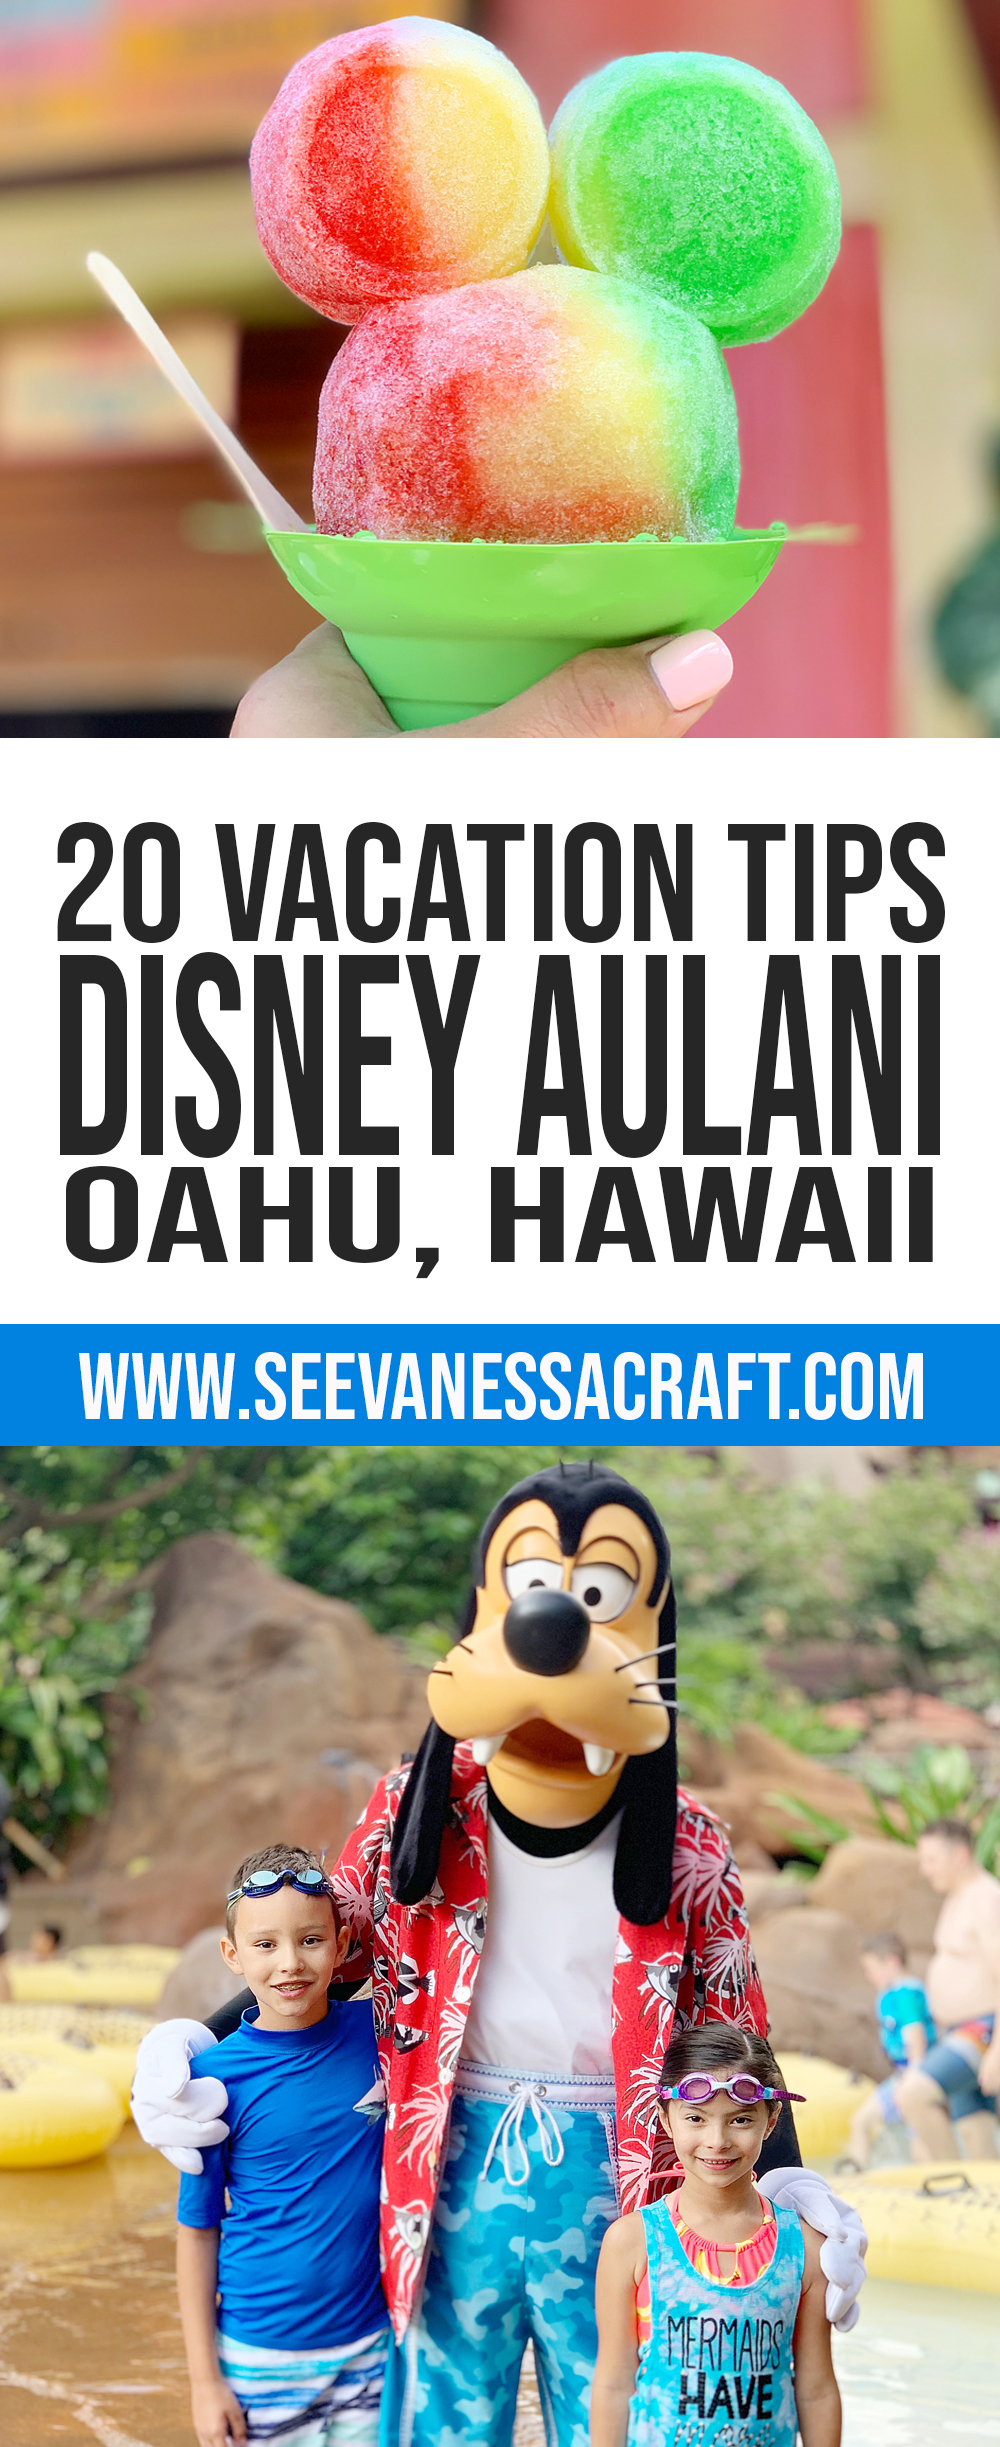 20 Tips for Families Visiting Disney Aulani in Hawaii